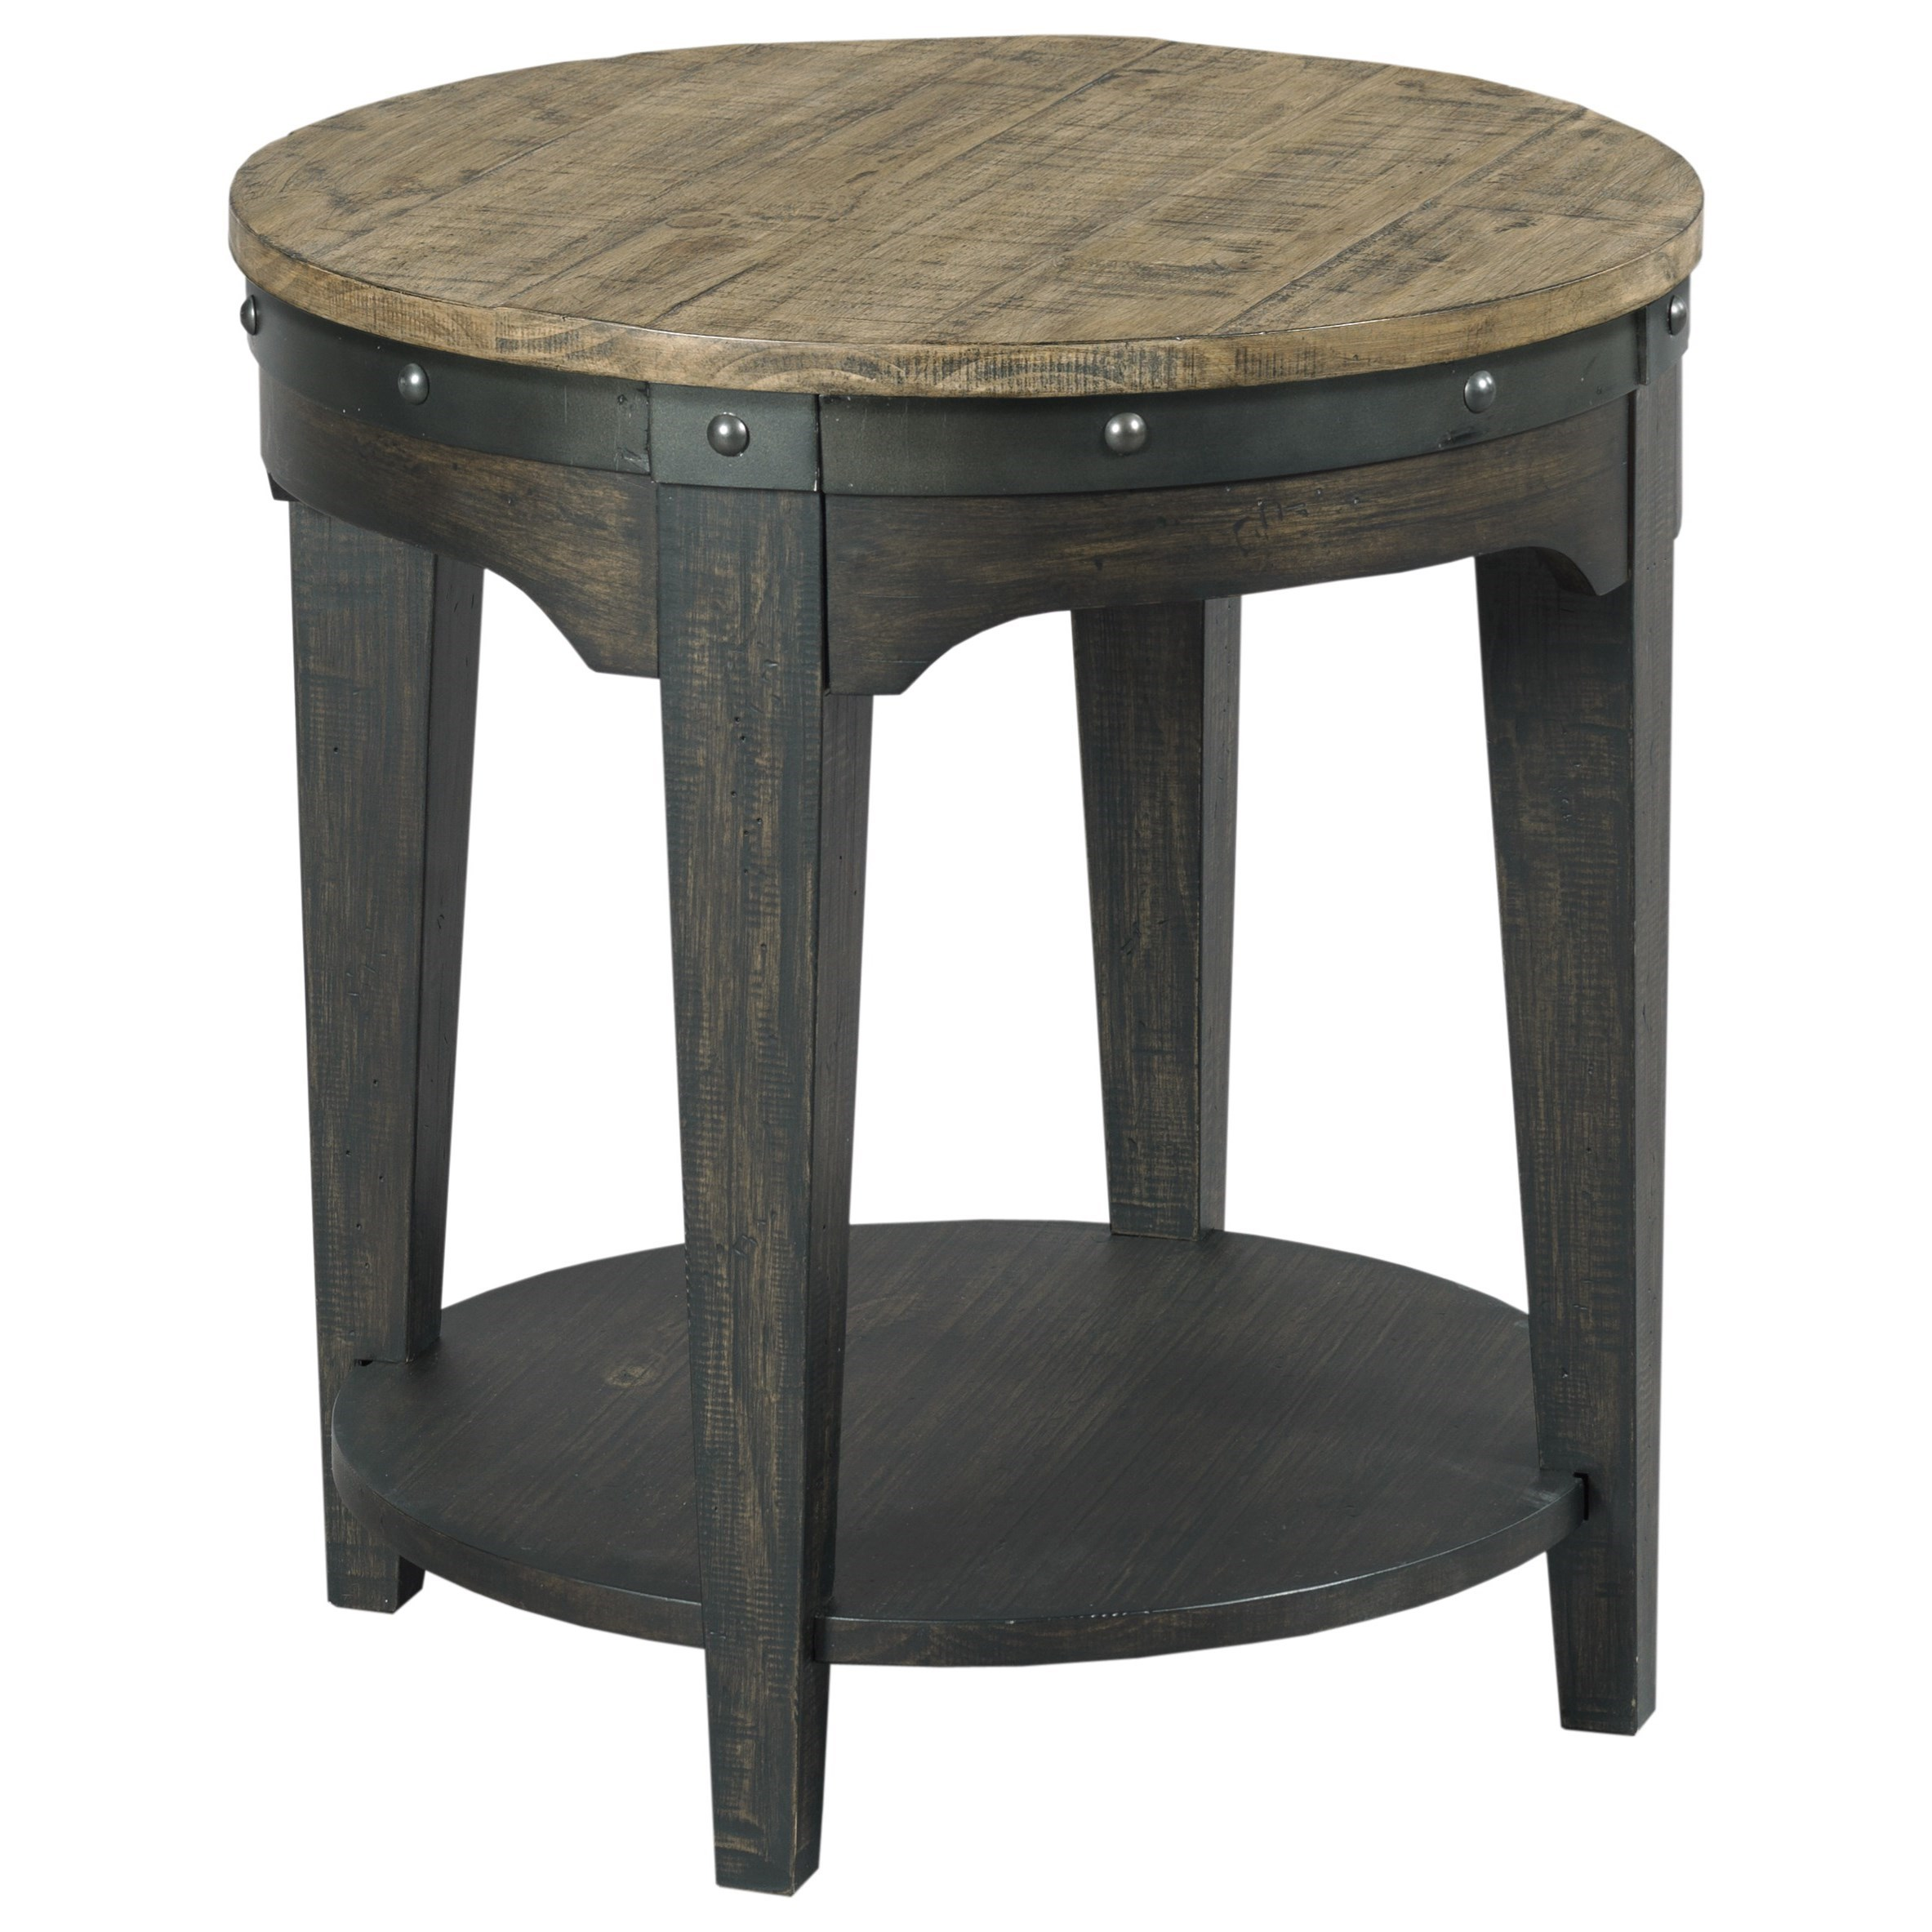 Kincaid Furniture Plank Road Artisans Round End Table                     - Item Number: 706-920C